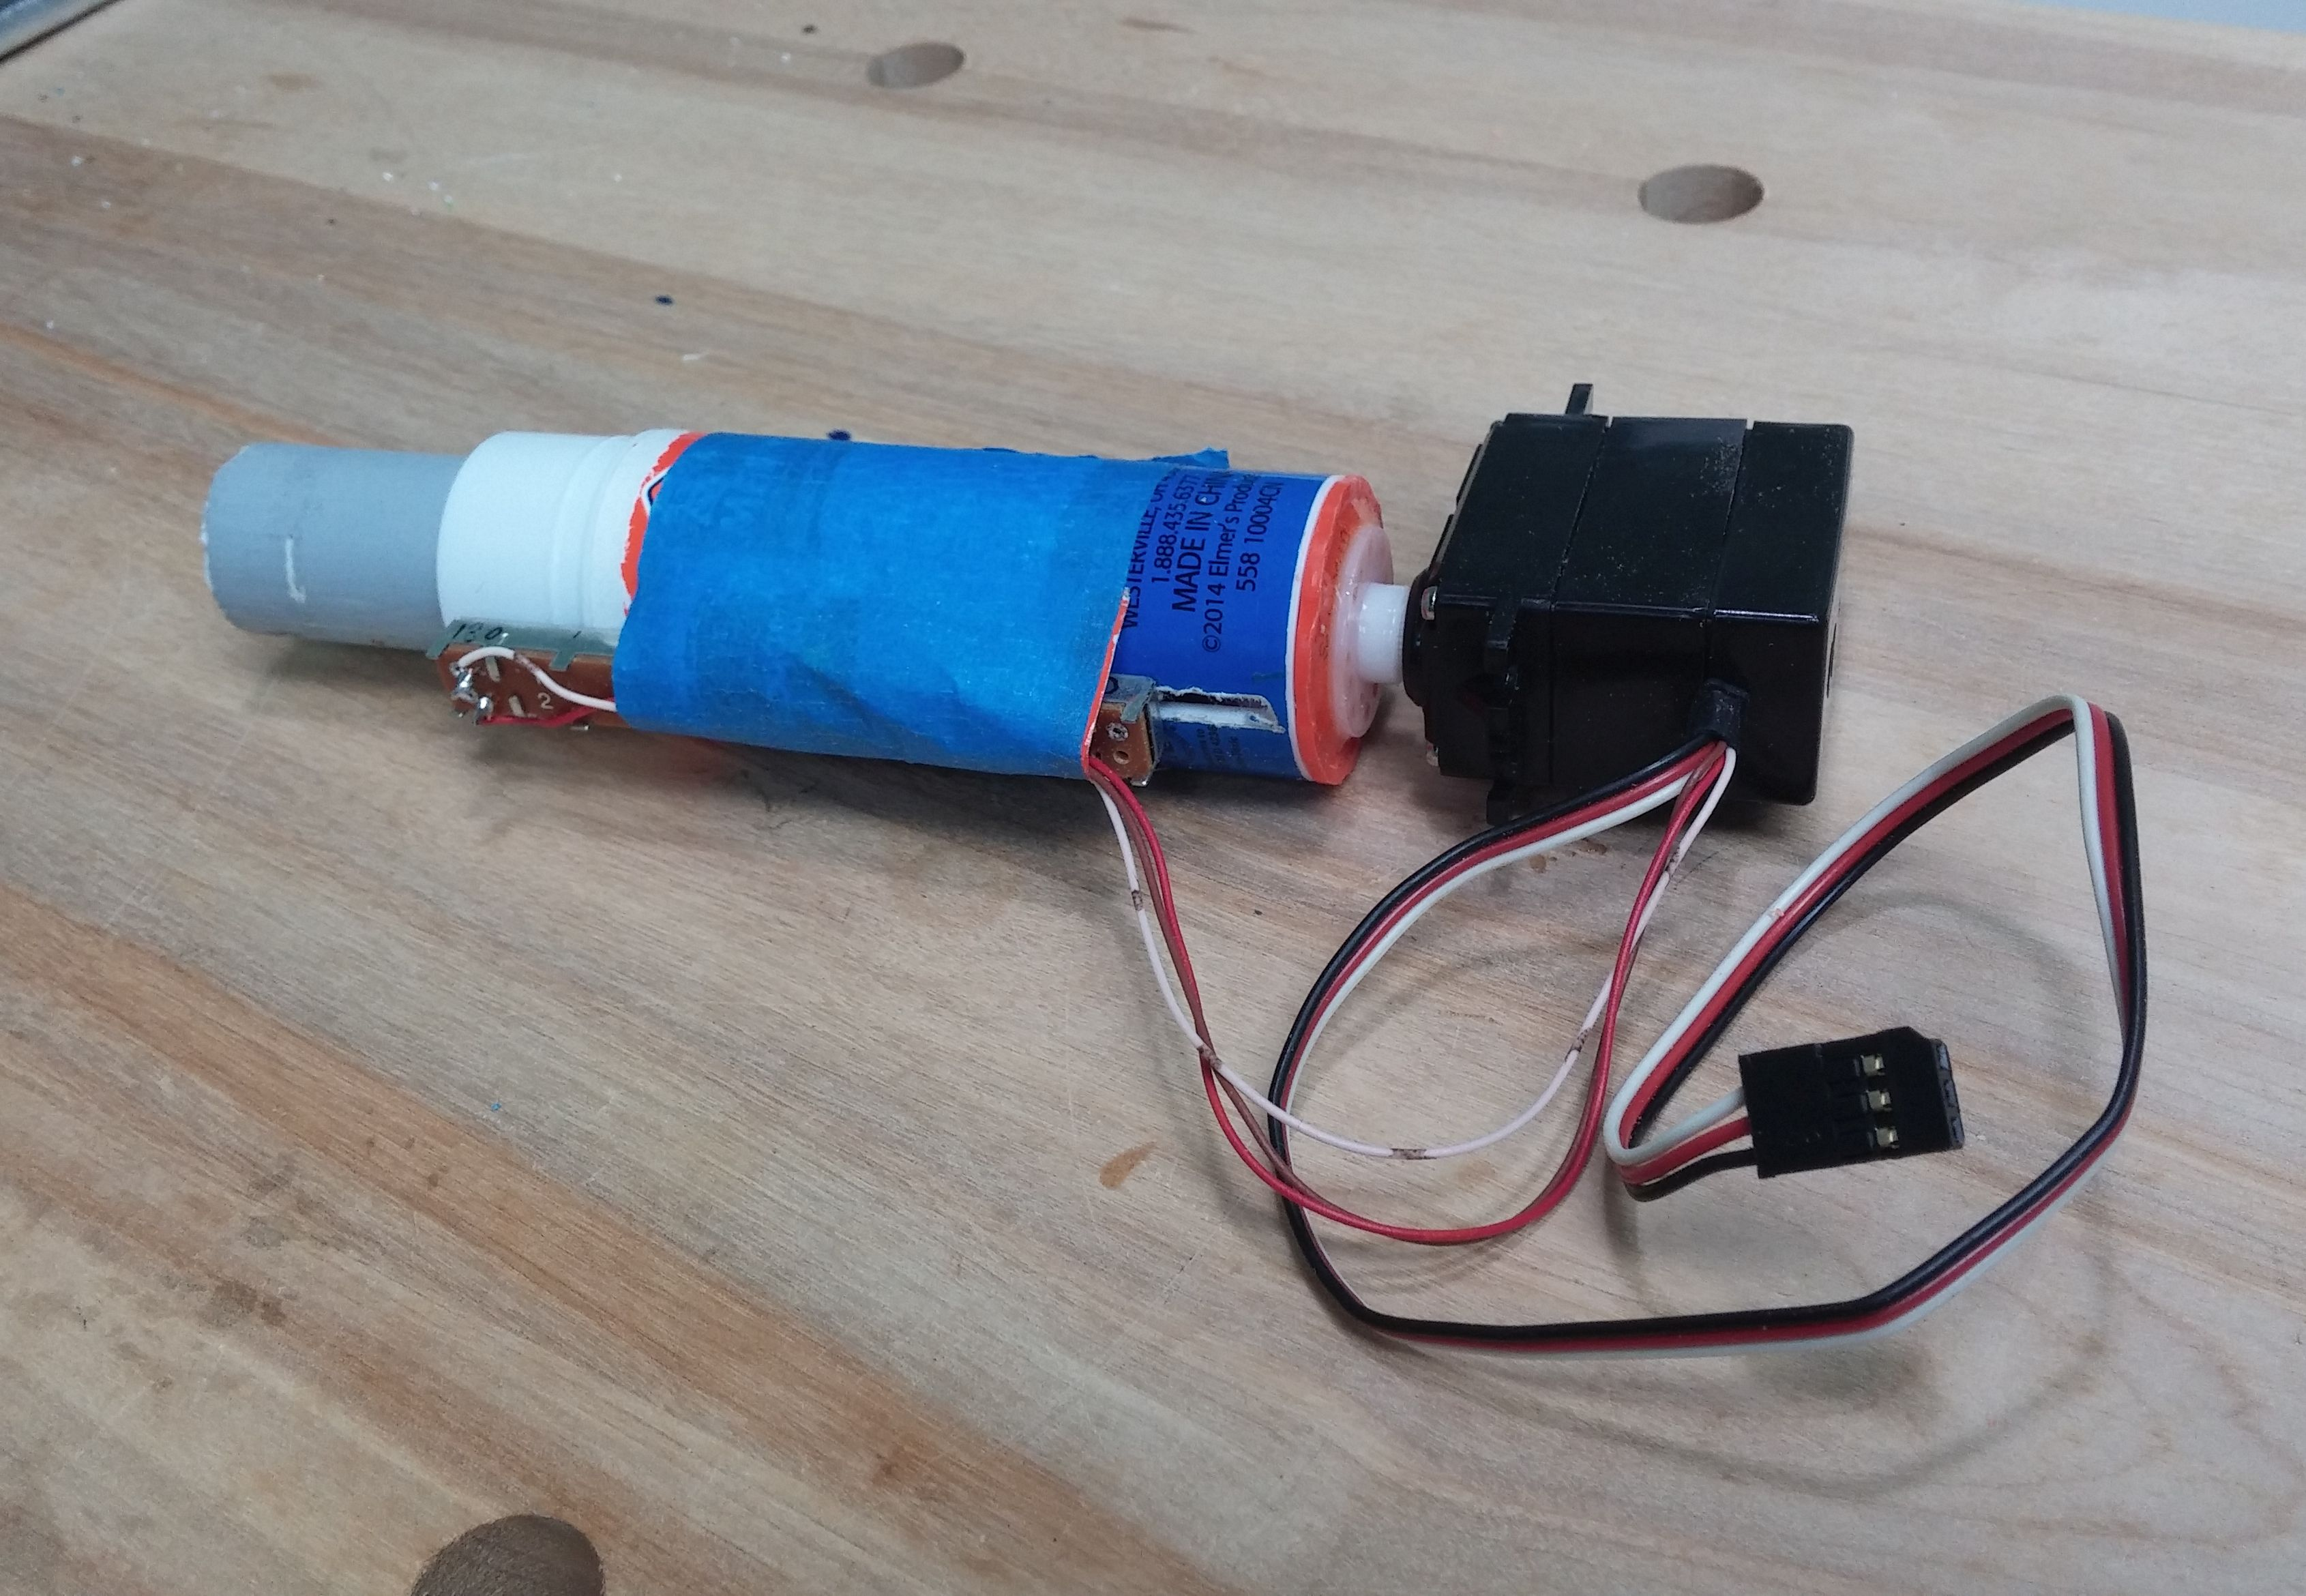 Build This Inexpensive Linear Actuator from a Glue Stick | Make: on